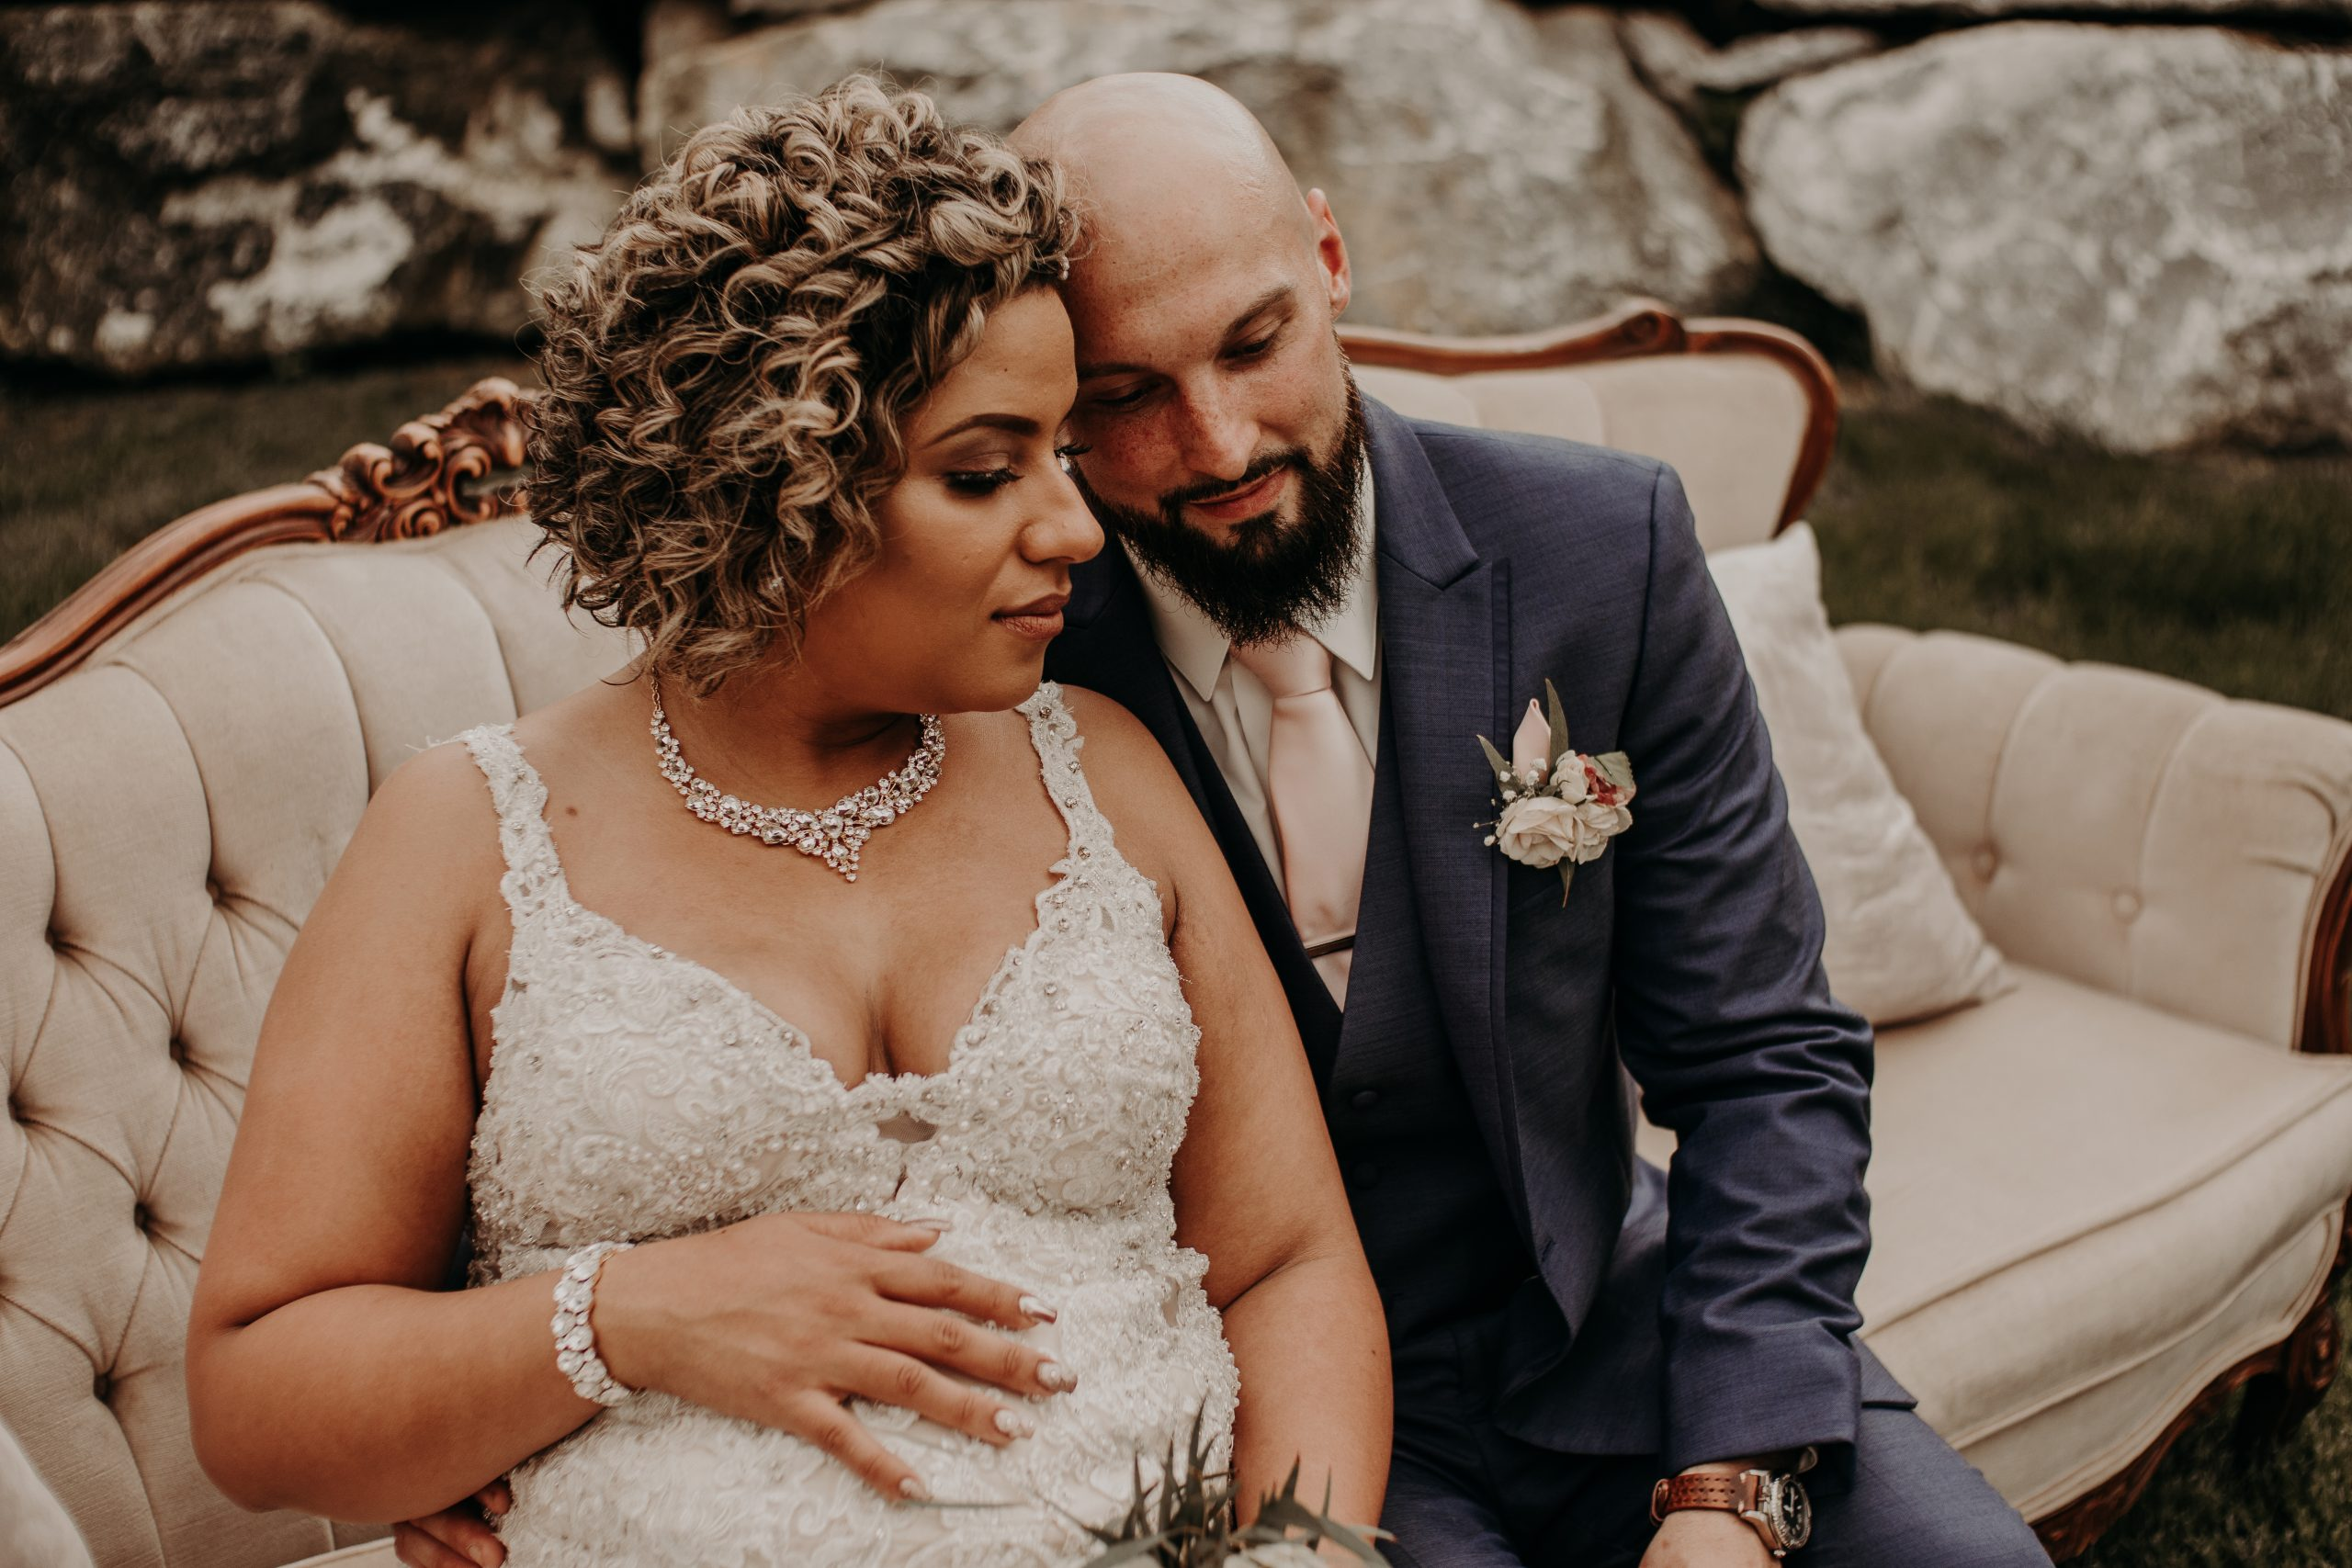 Embracing each other, the newly weds reflect on their special day. Christine and Richard wed on the Chestnut Hill Villa grounds on May of 2019. This organic ethereal styled wedding was captured by Garnet Dahlia Photography and featured on Dream Weddings.